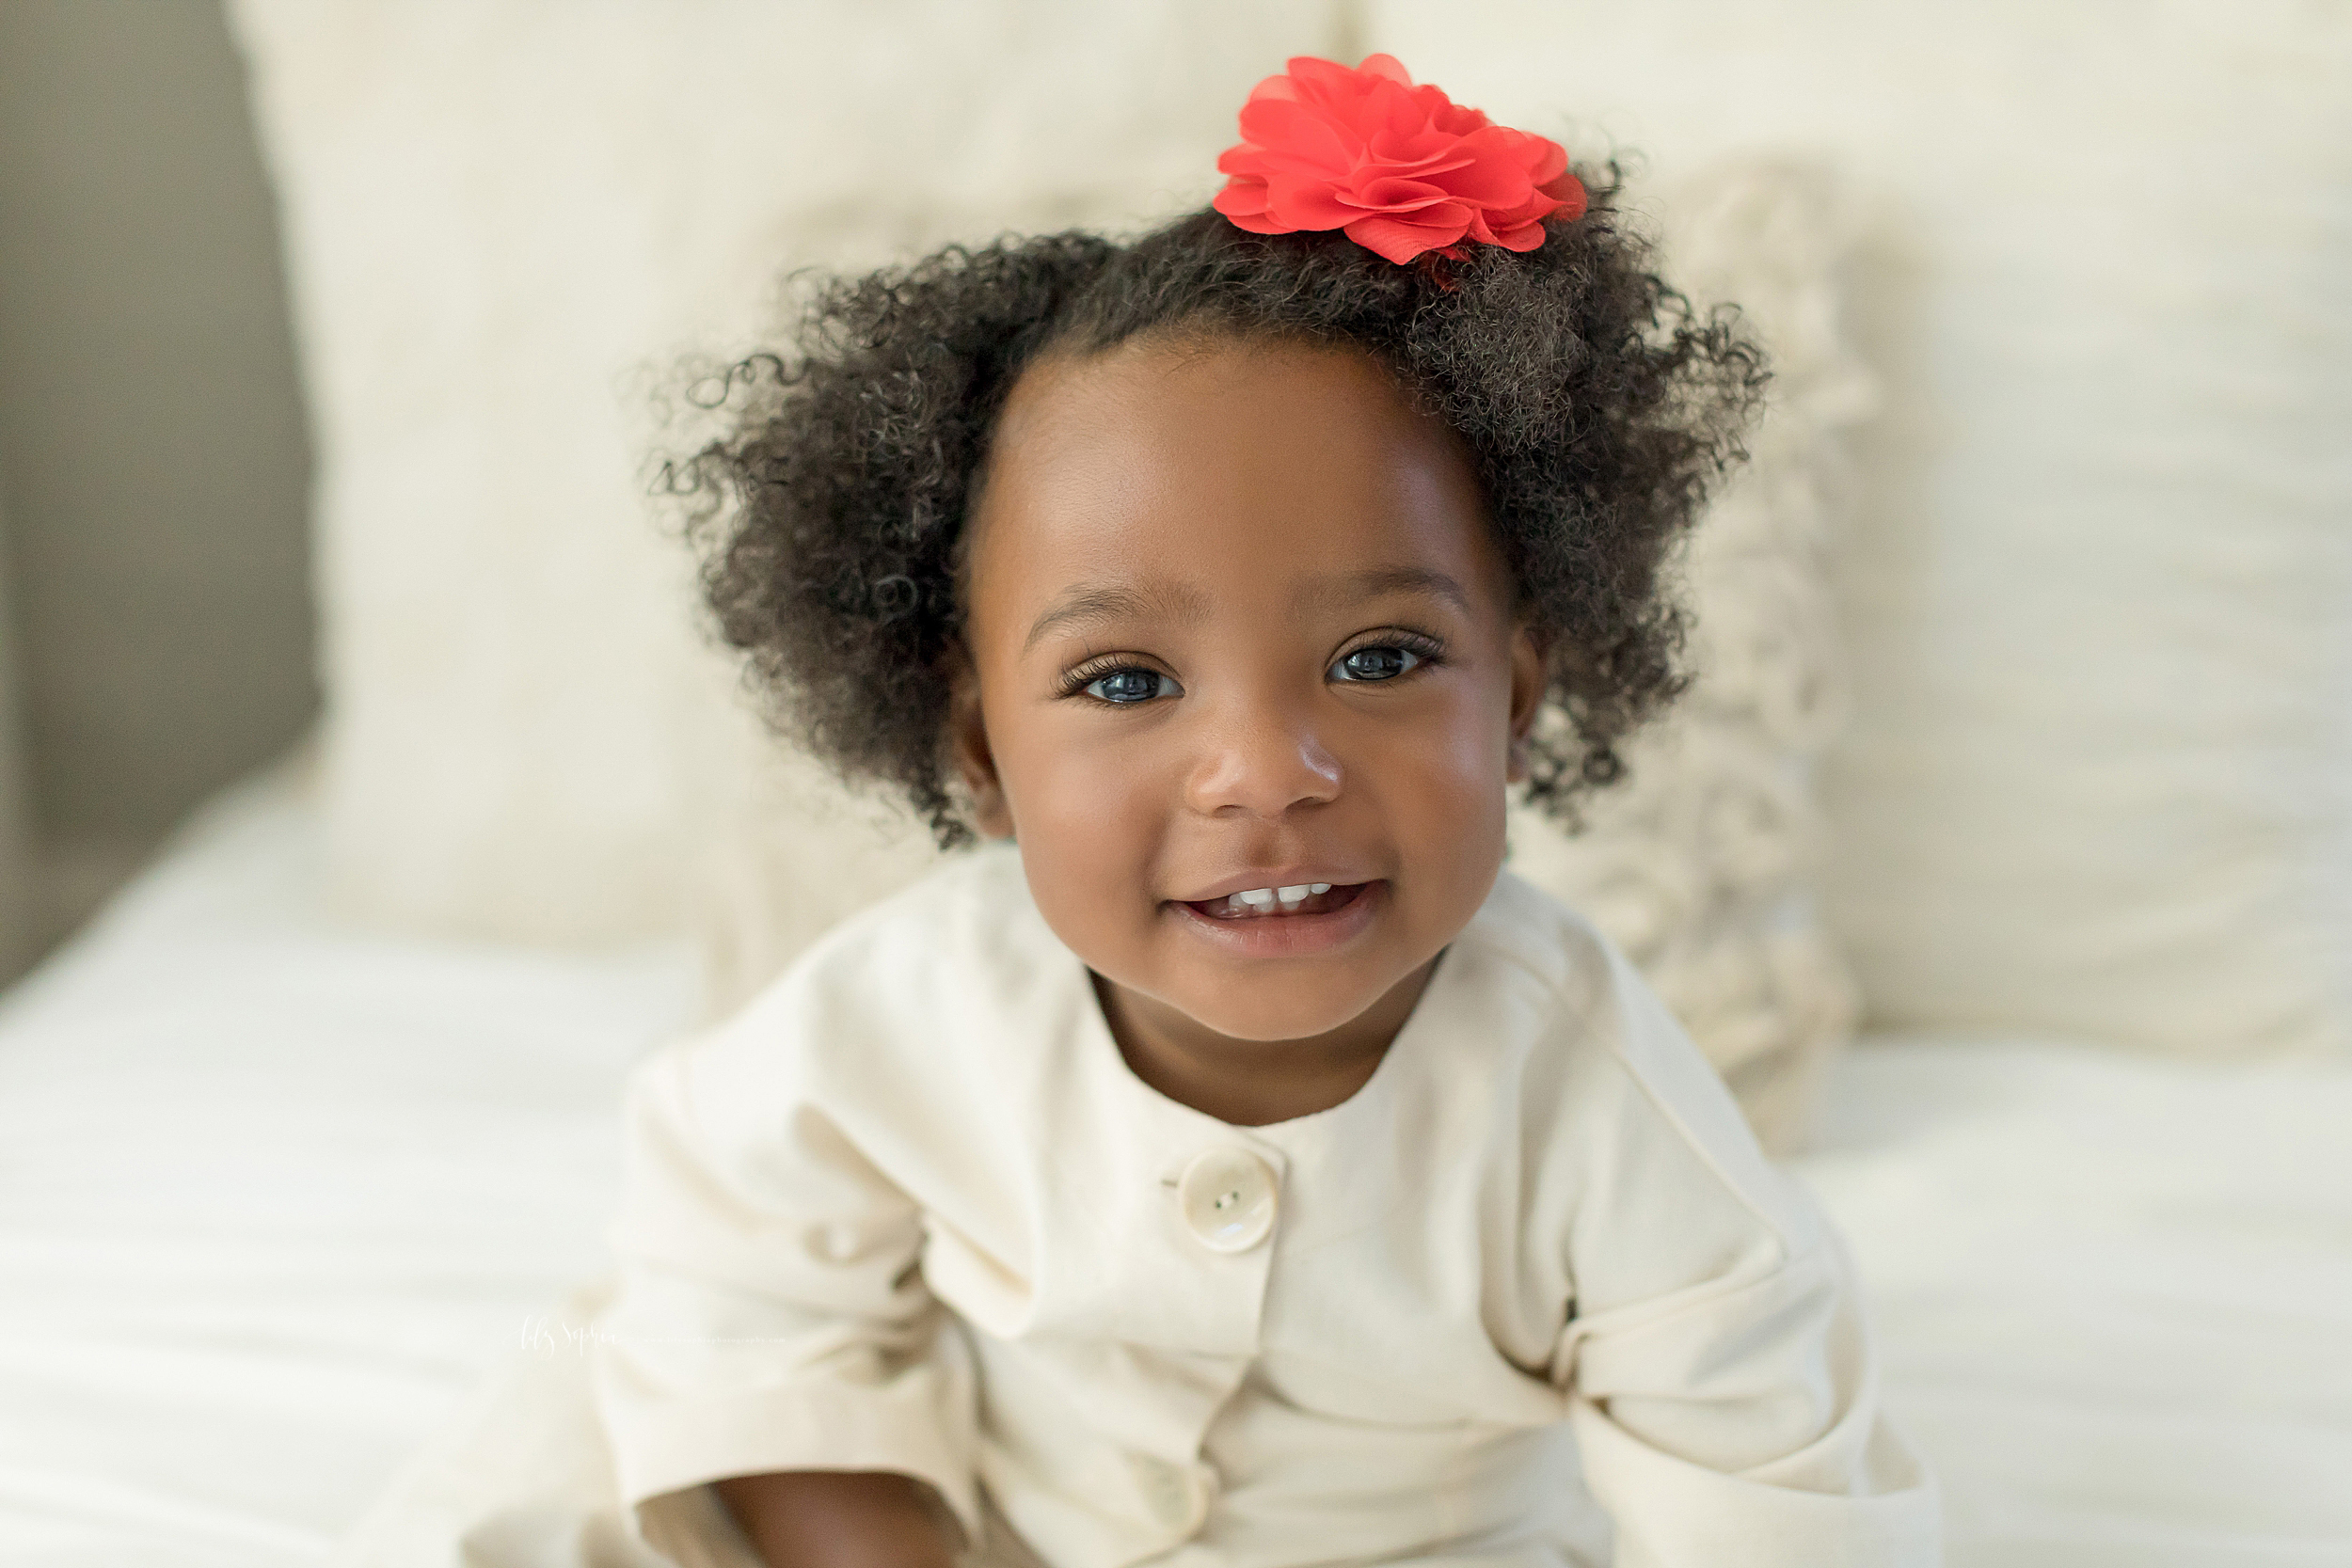 An African American toddler smiles while sitting on a bed for a family photographer in Atlanta.